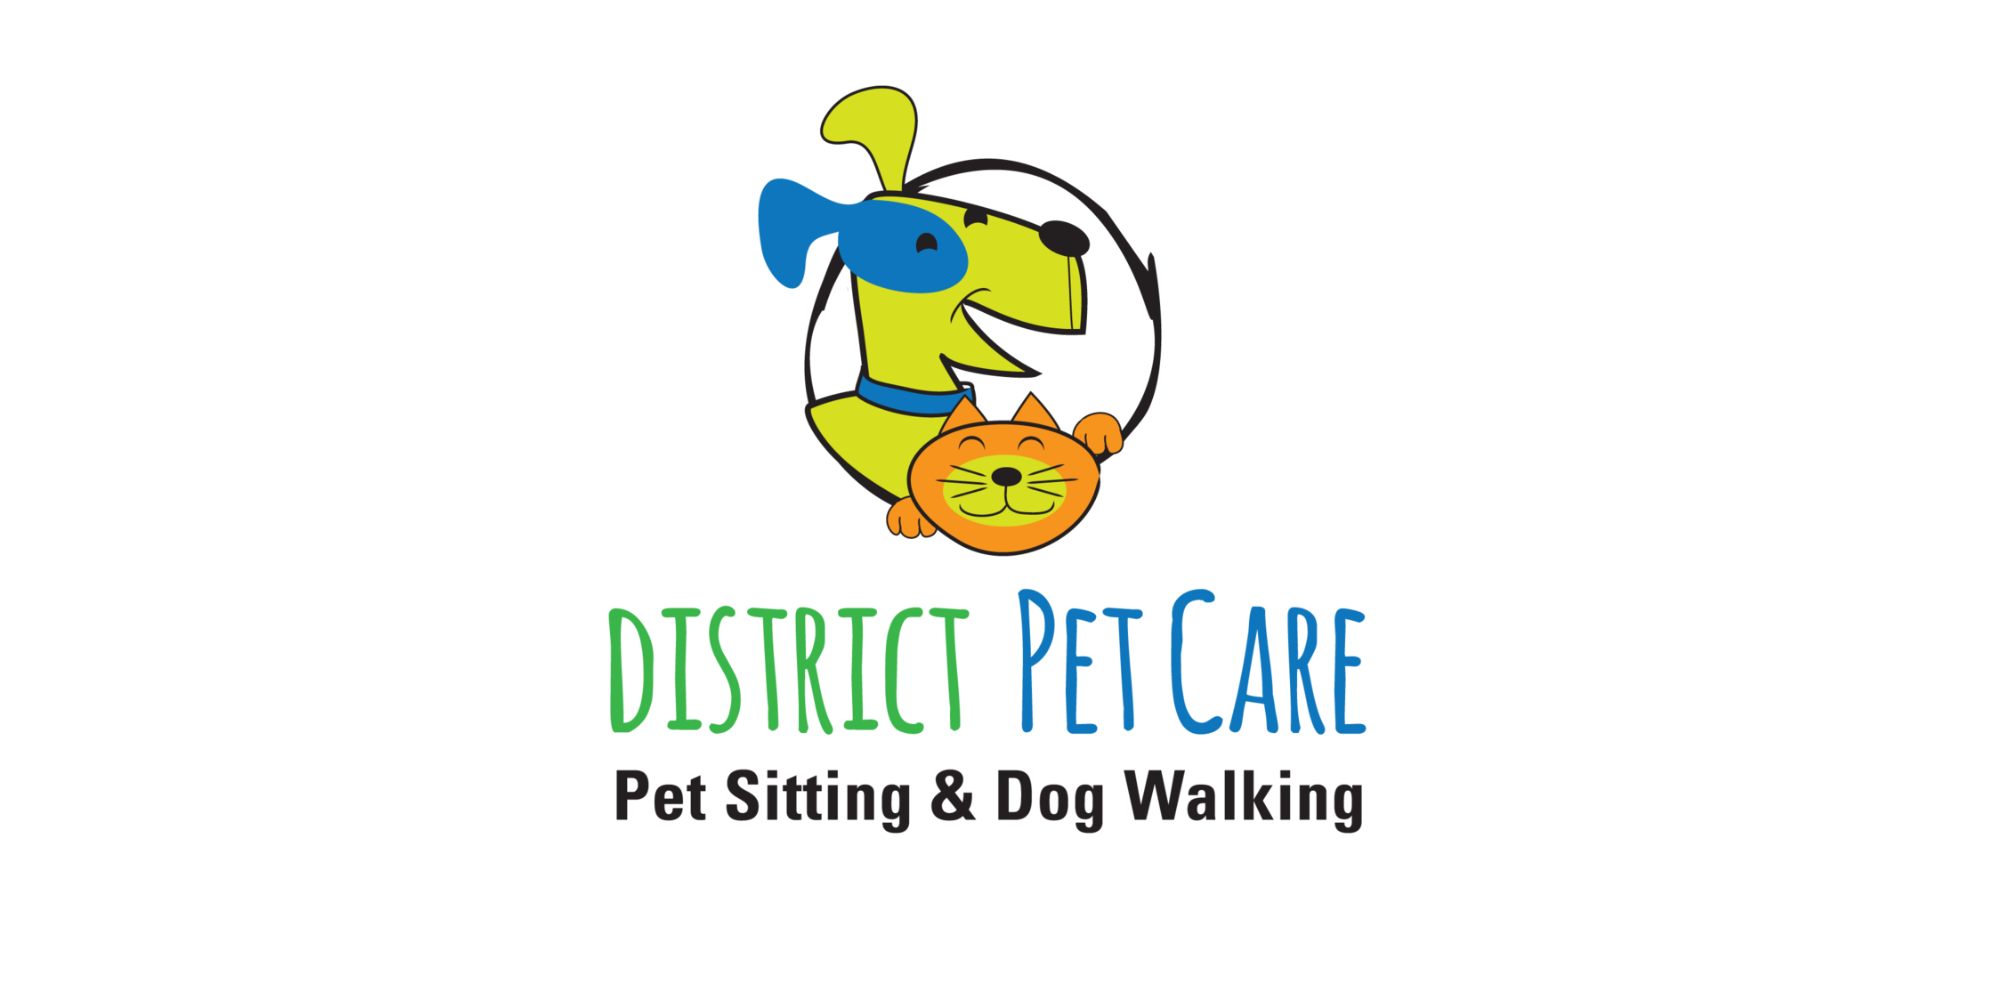 District-pet-care-logo